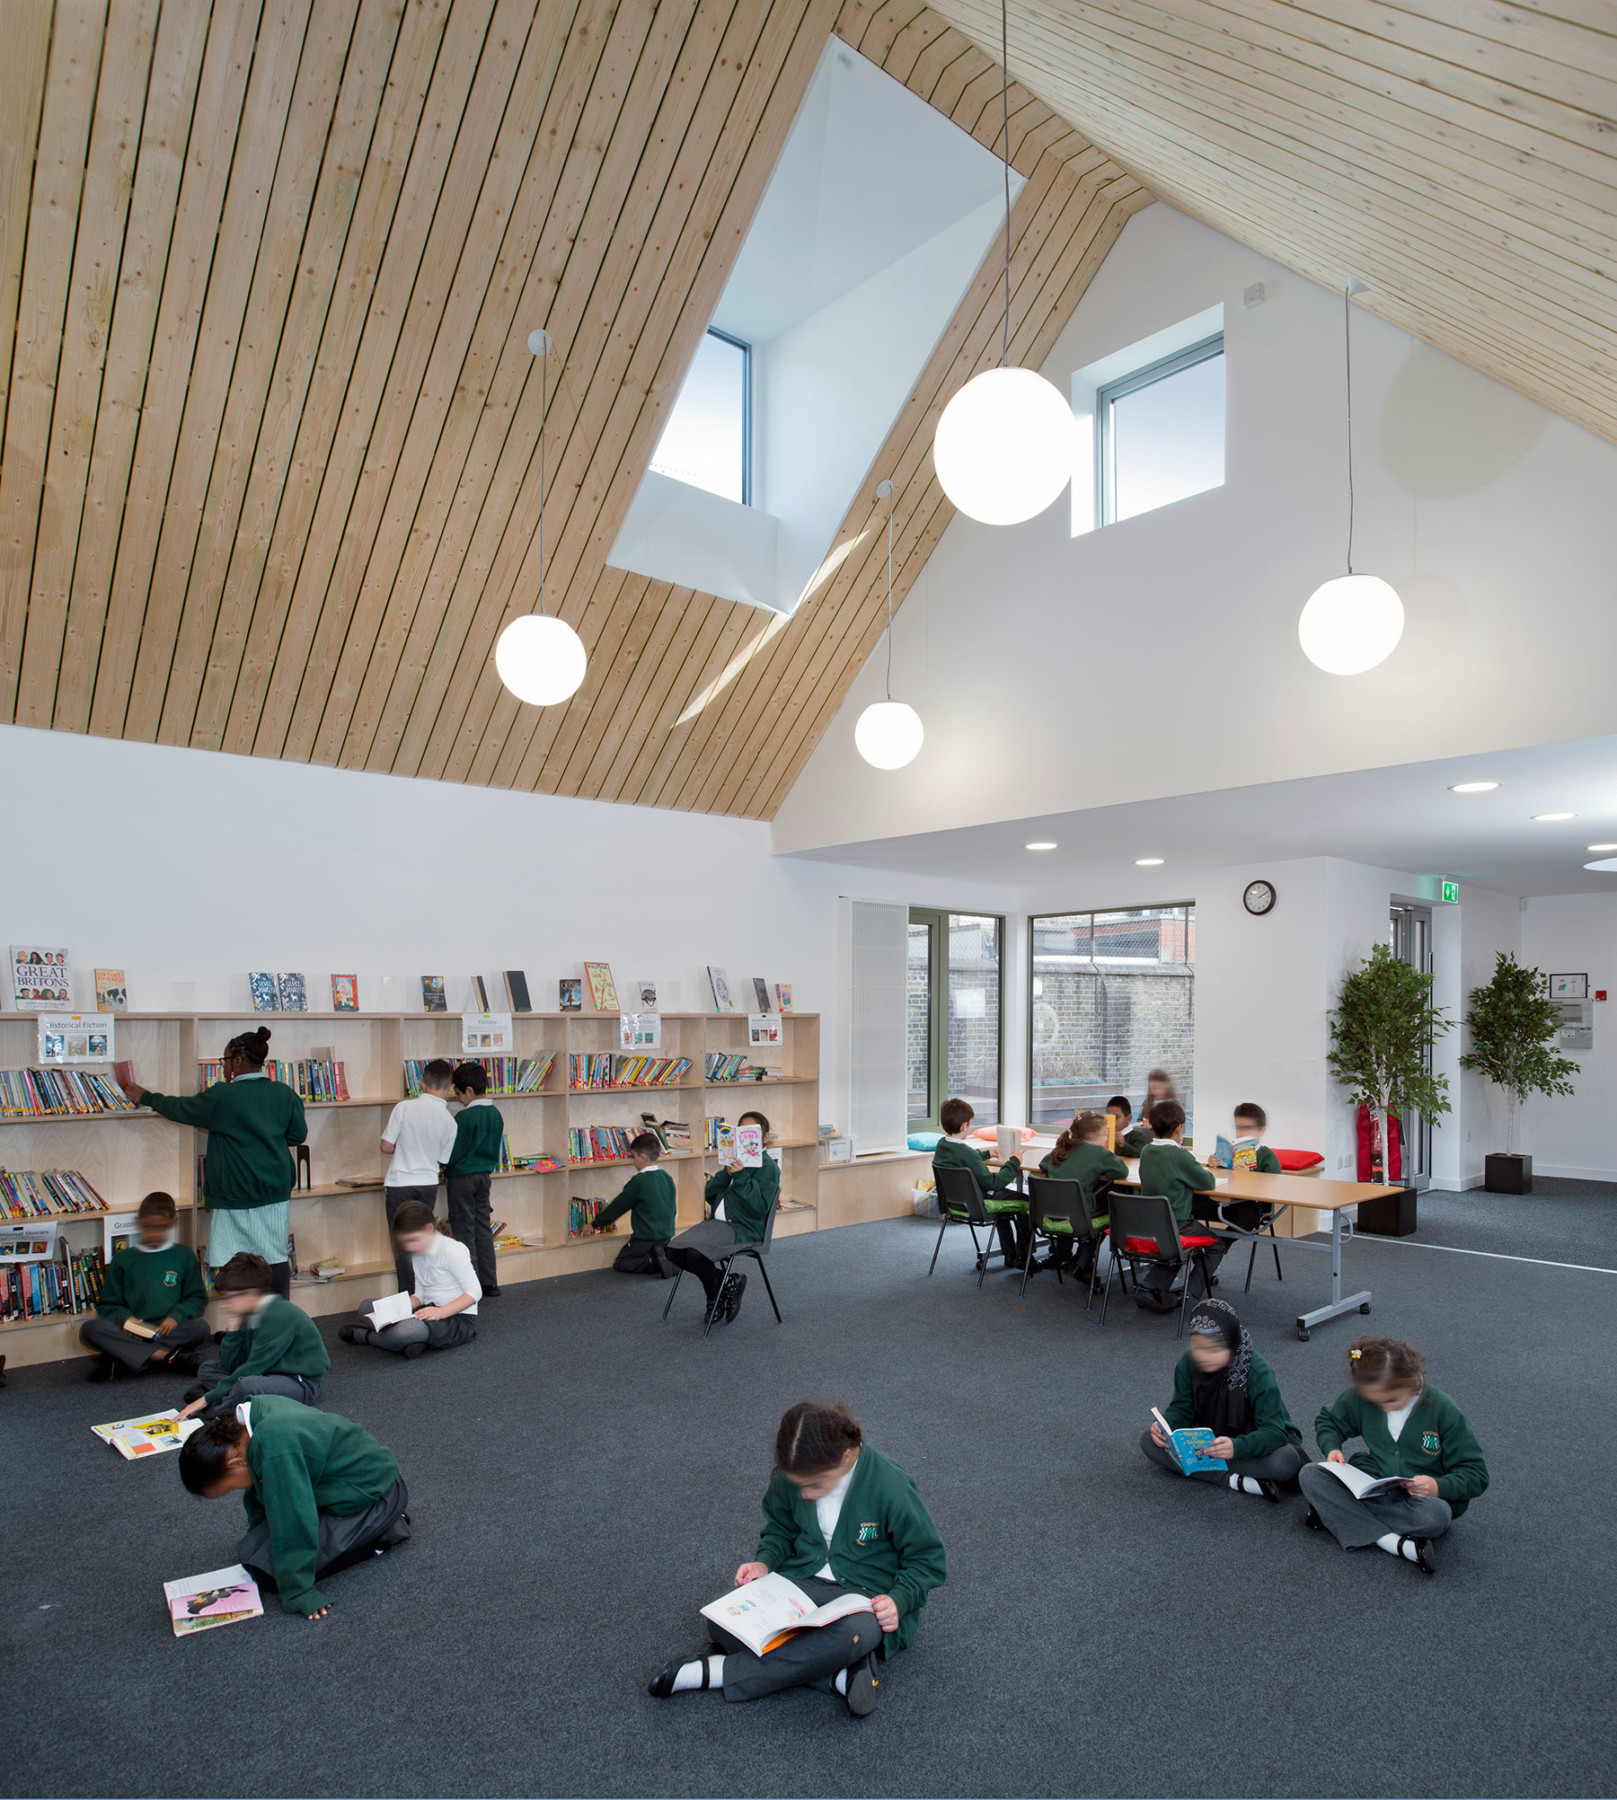 Sarah-Wigglesworth-Architects Kingsgate School Library 1800